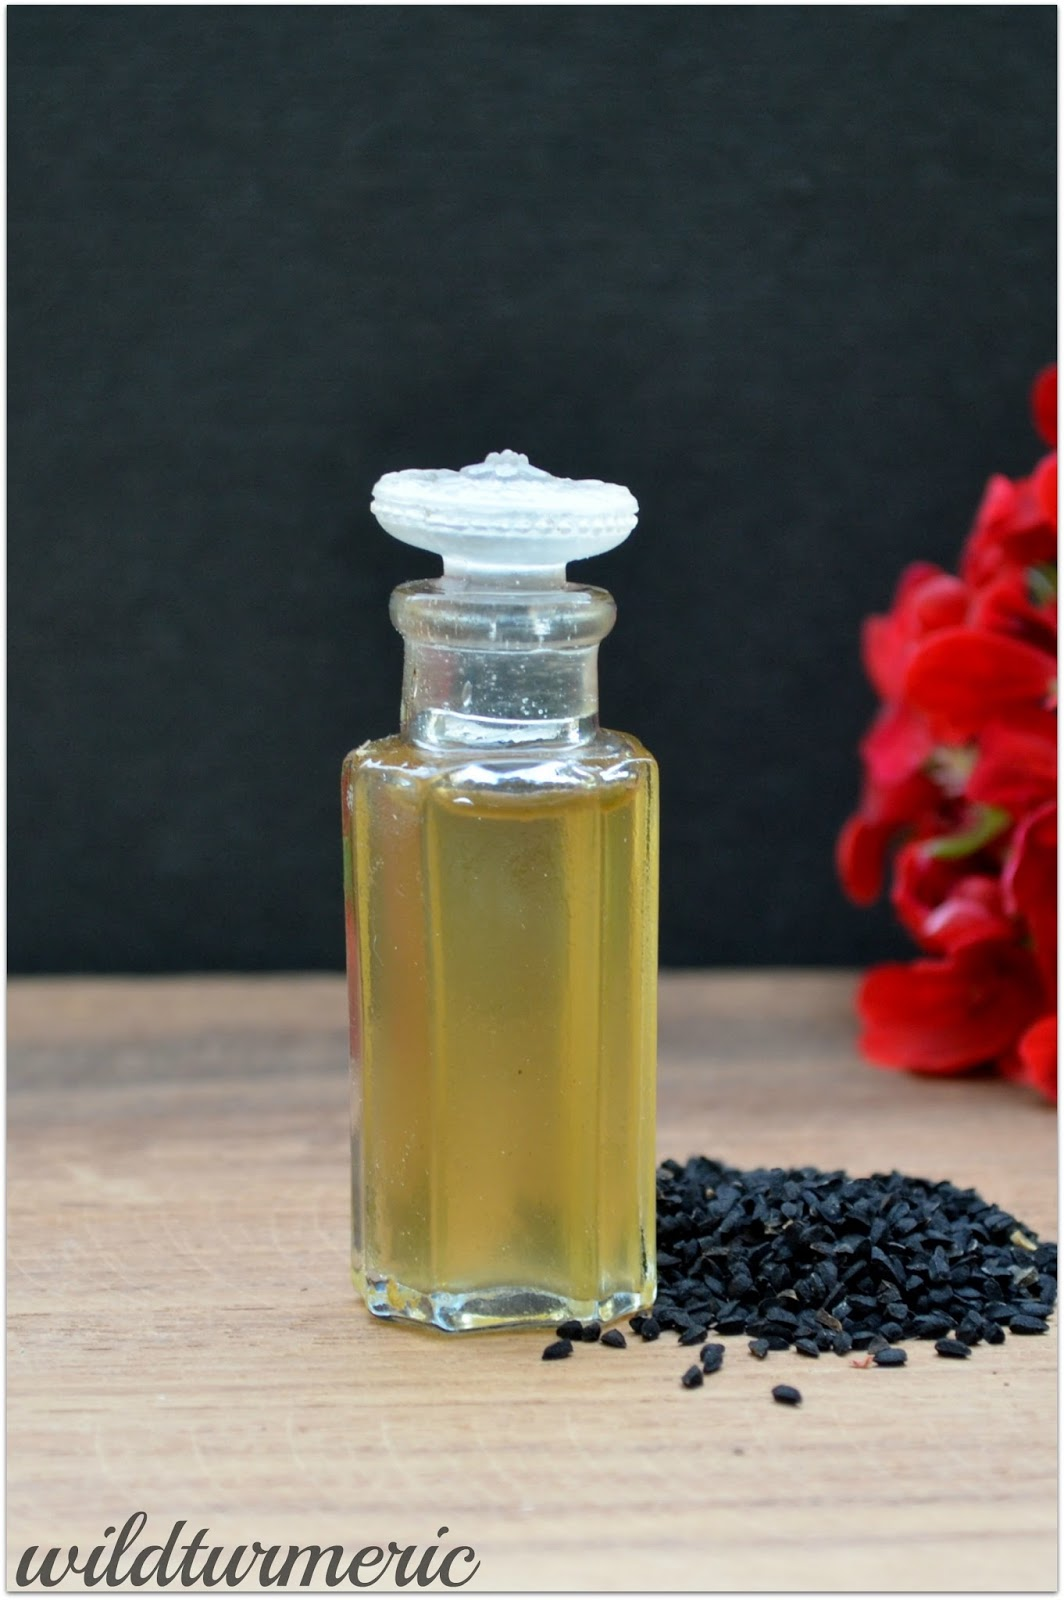 10 Top Medicinal Uses & Side Effects Of Kalonji Oil | Black Seed Oil (Karunjeeragam Oil)